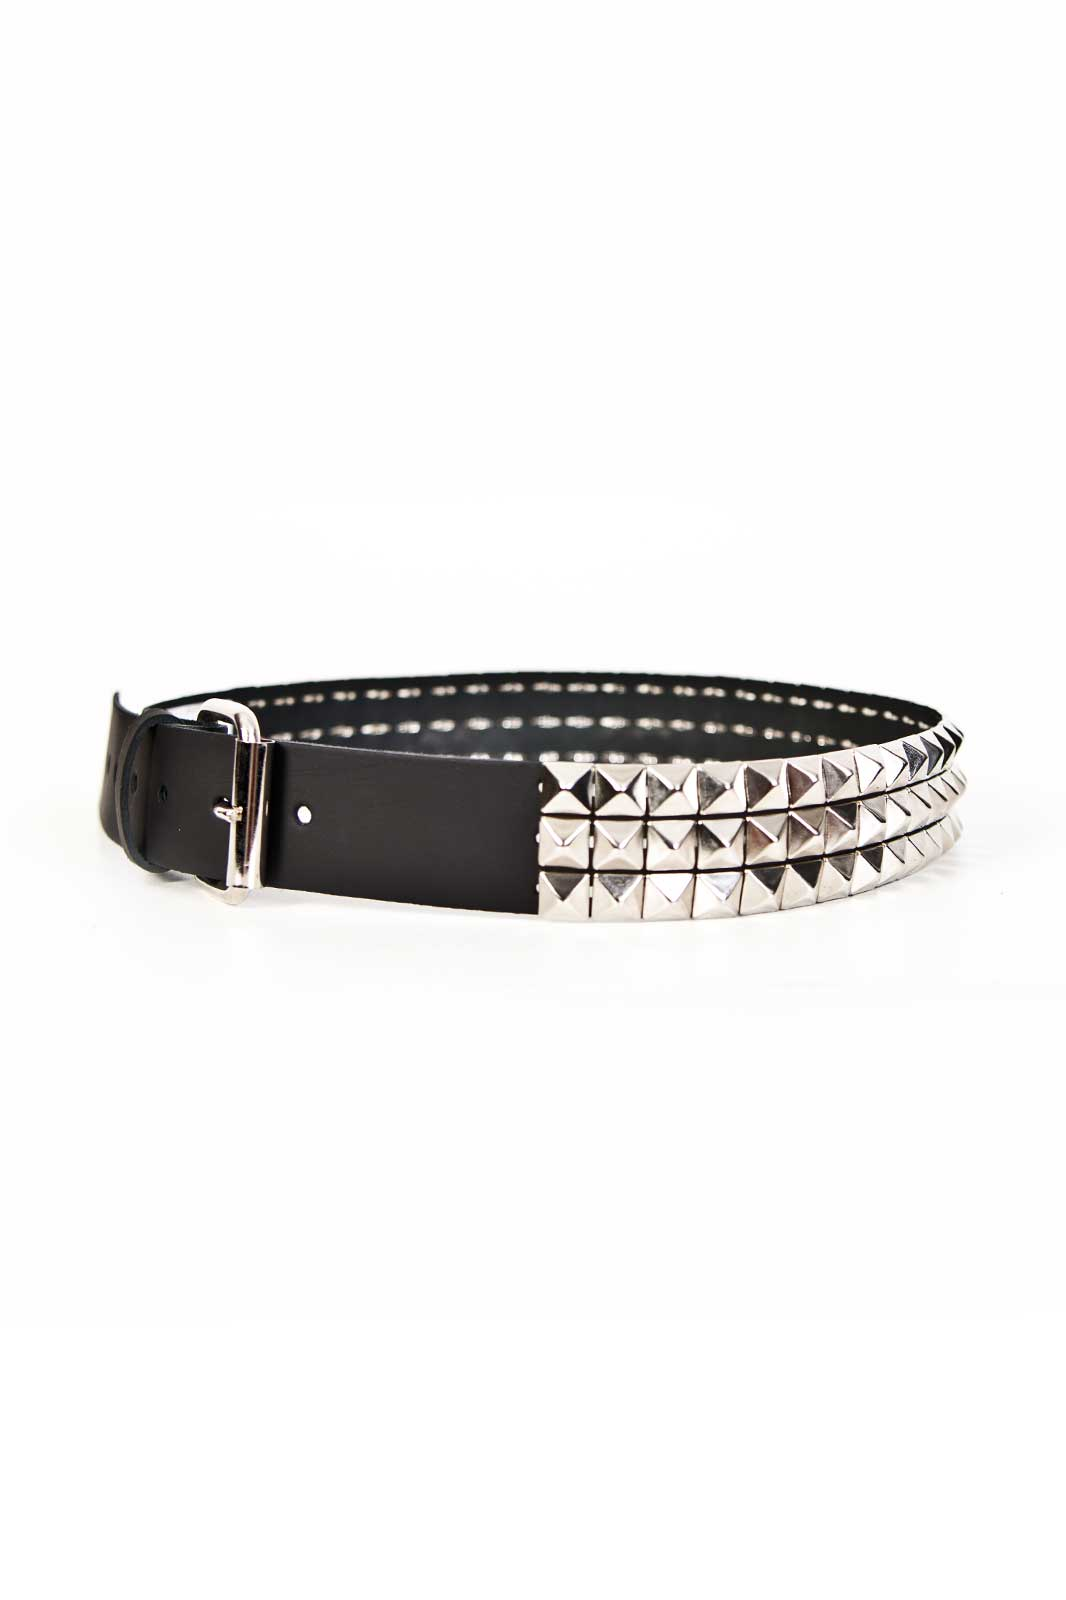 3 Row Silver Pyramid Leather Belt Black